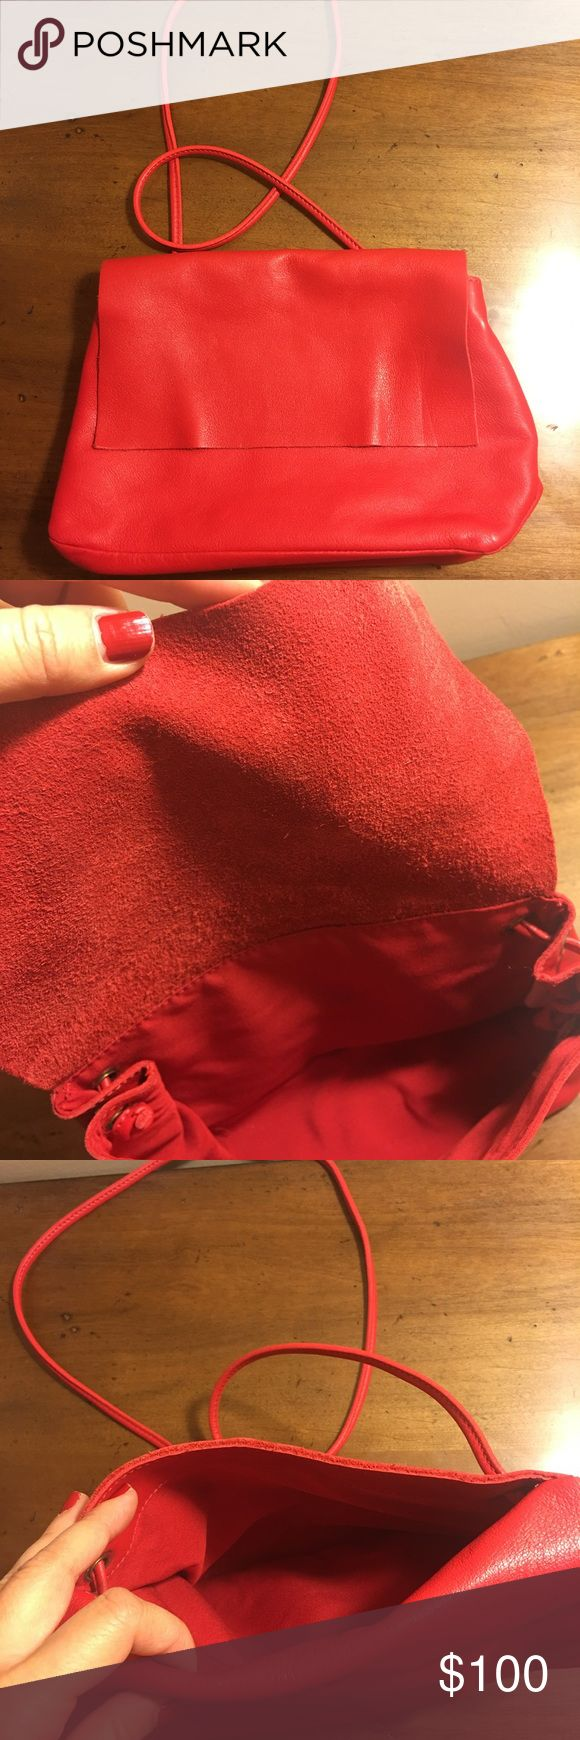 Cos crossbody leather bag Slightly used  Very soft leather  Beautiful red color COS Bags Crossbody Bags